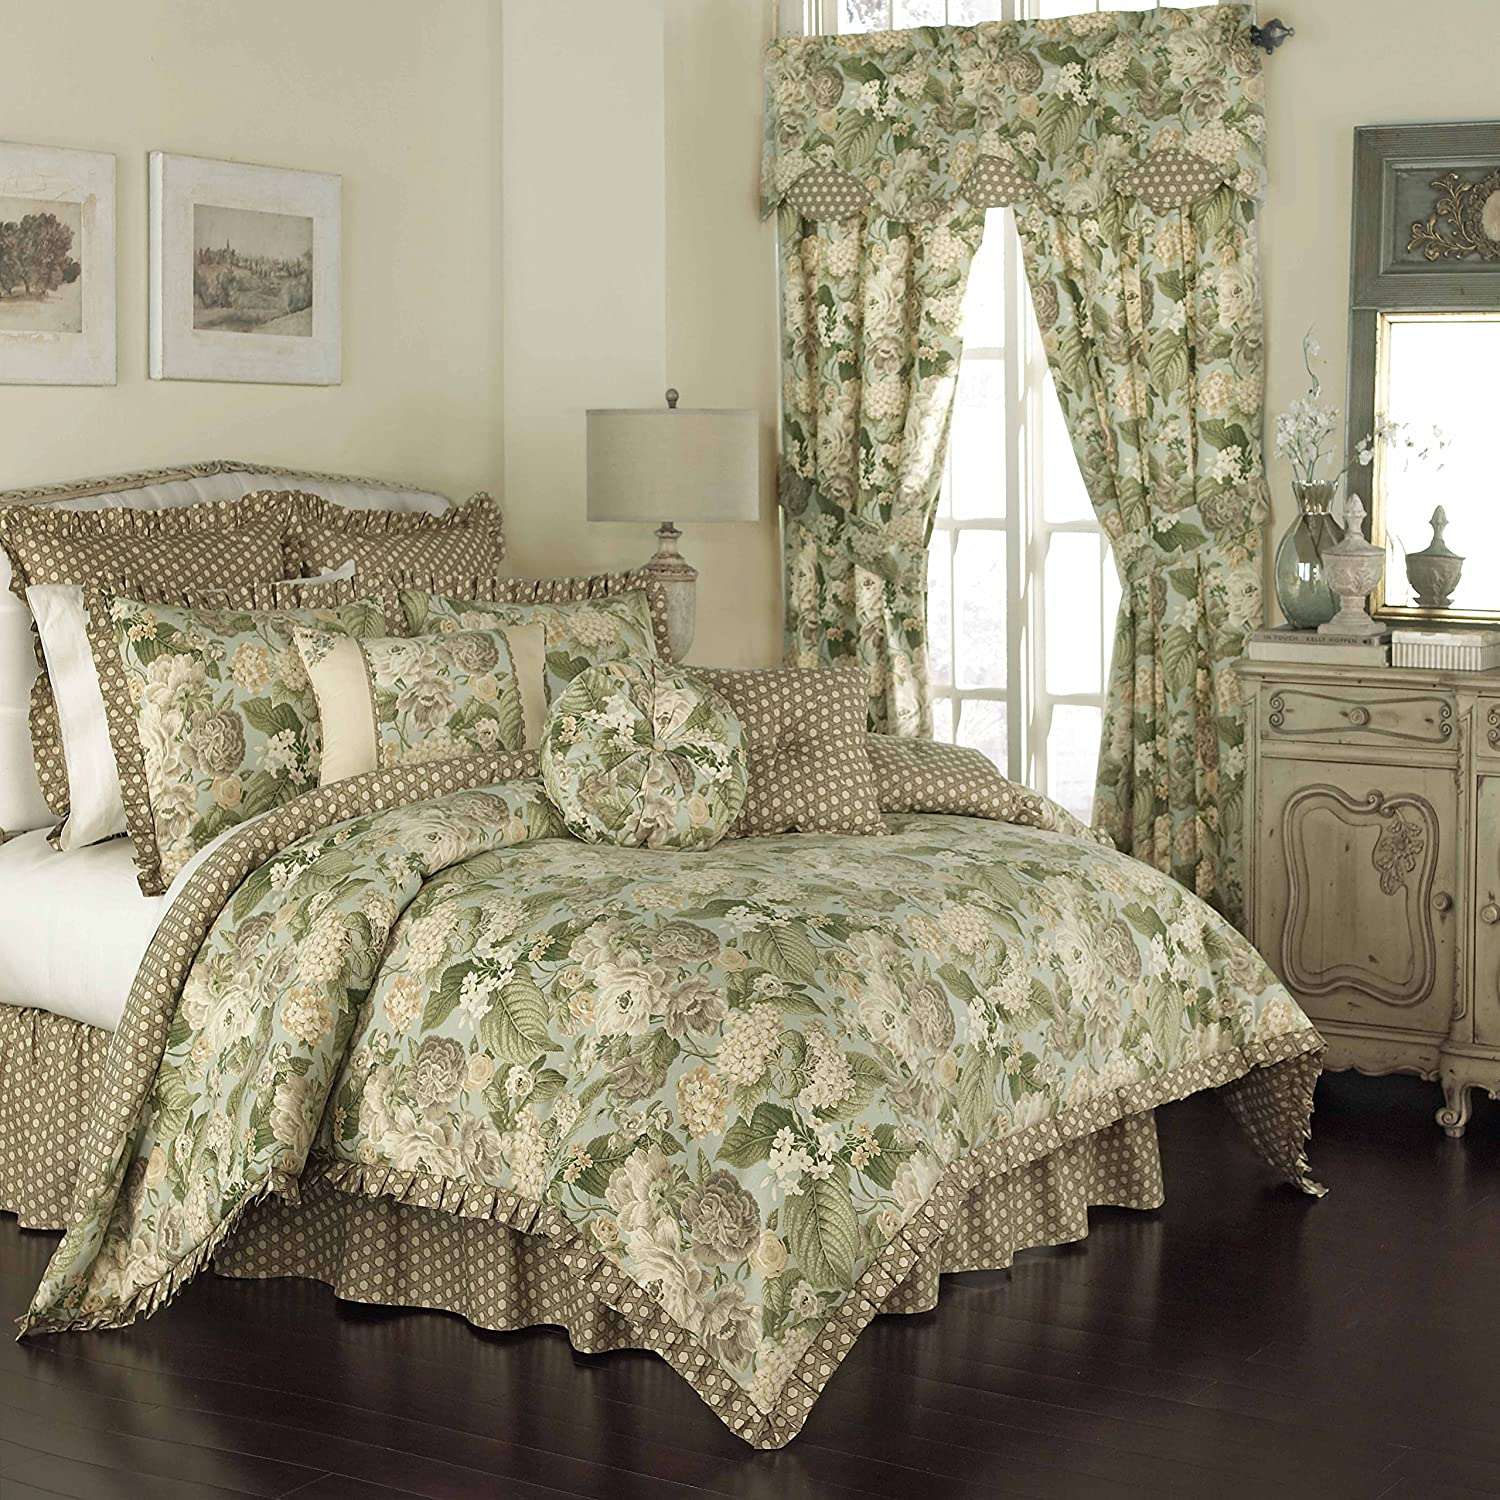 WAVERLY Garden Glory Comforter Collection, 96x92, Mist